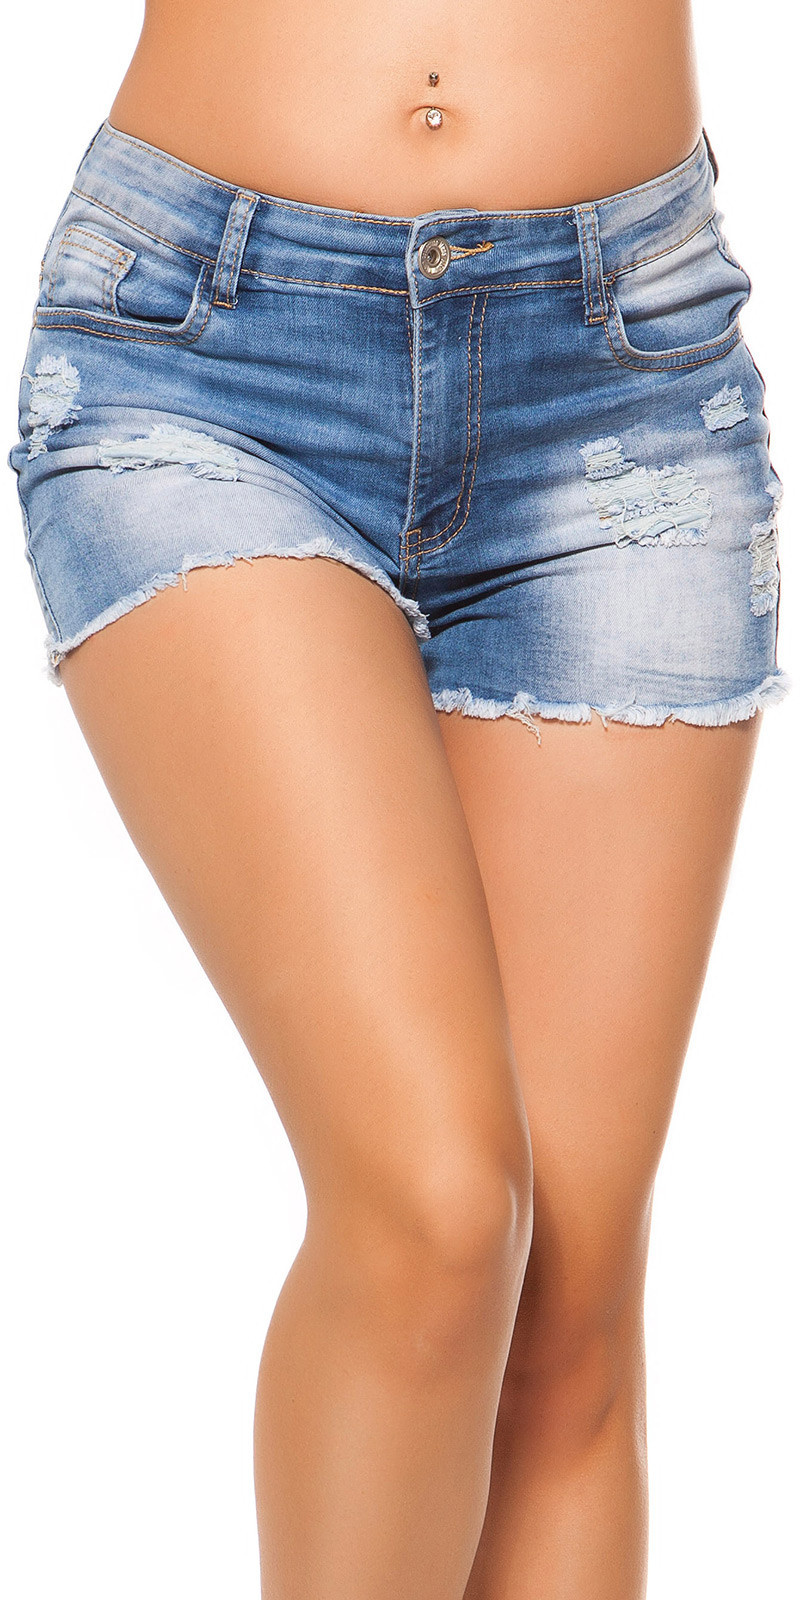 Sexy hoge taille jeans shorts jeansblauw